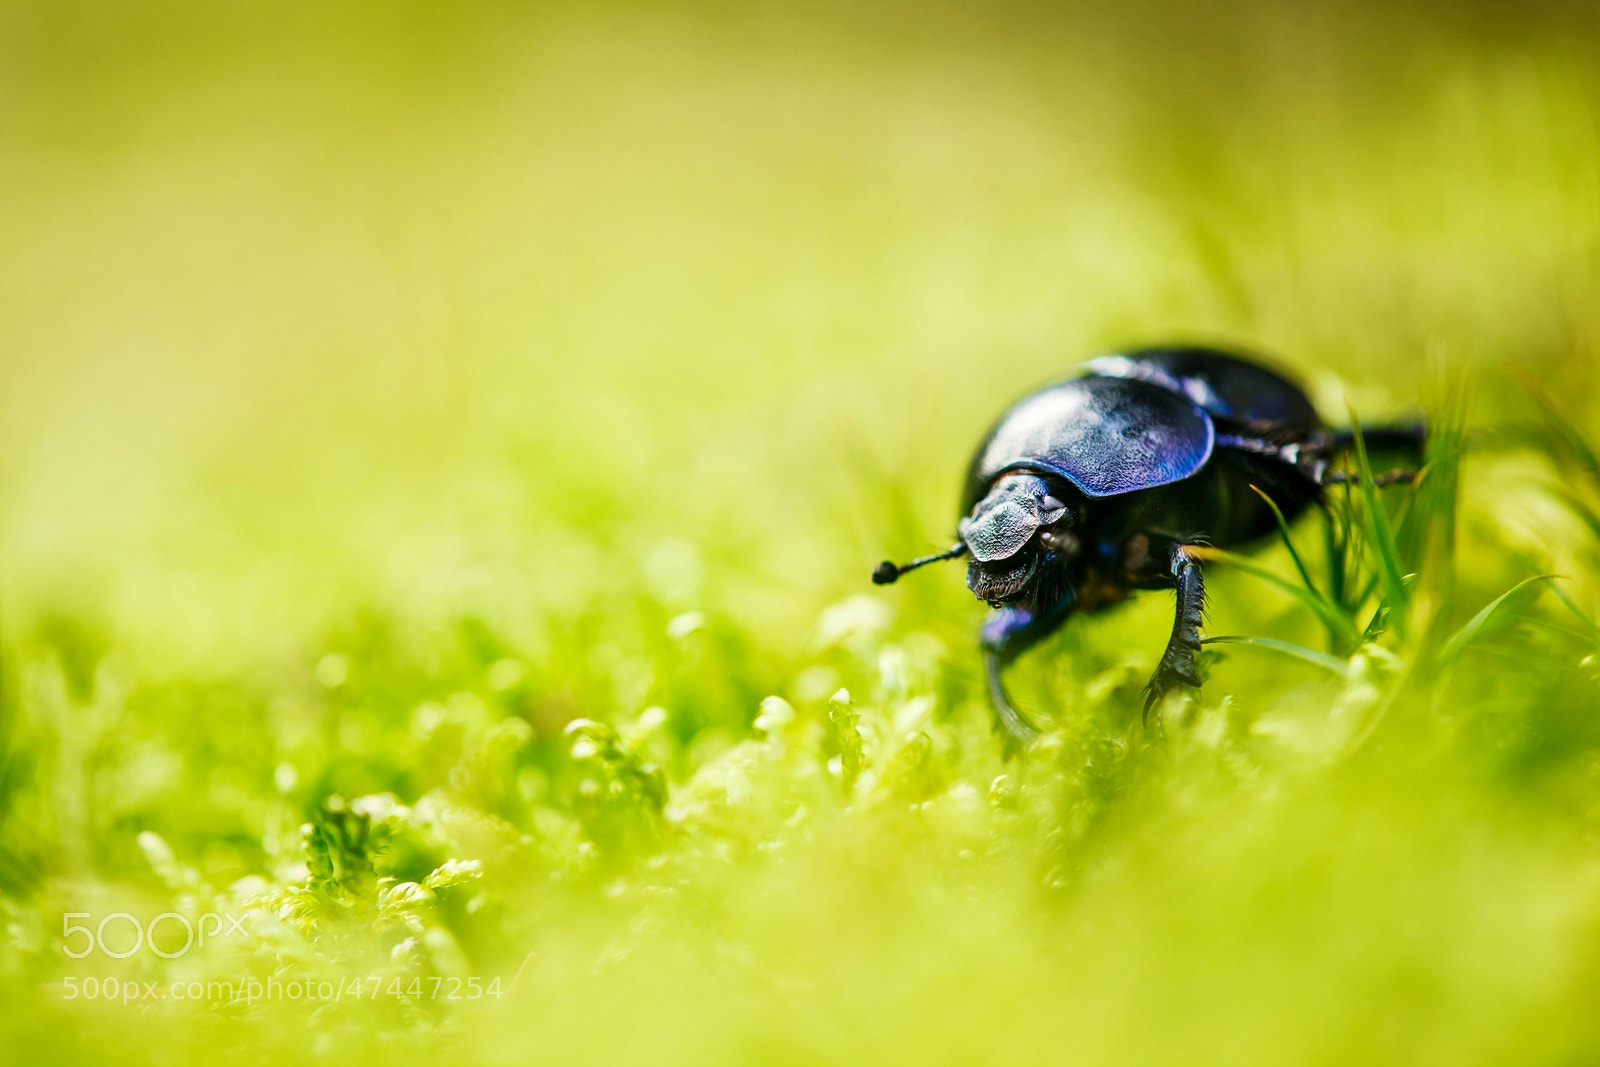 Photograph Bug ahead by Stefan Betz on 500px